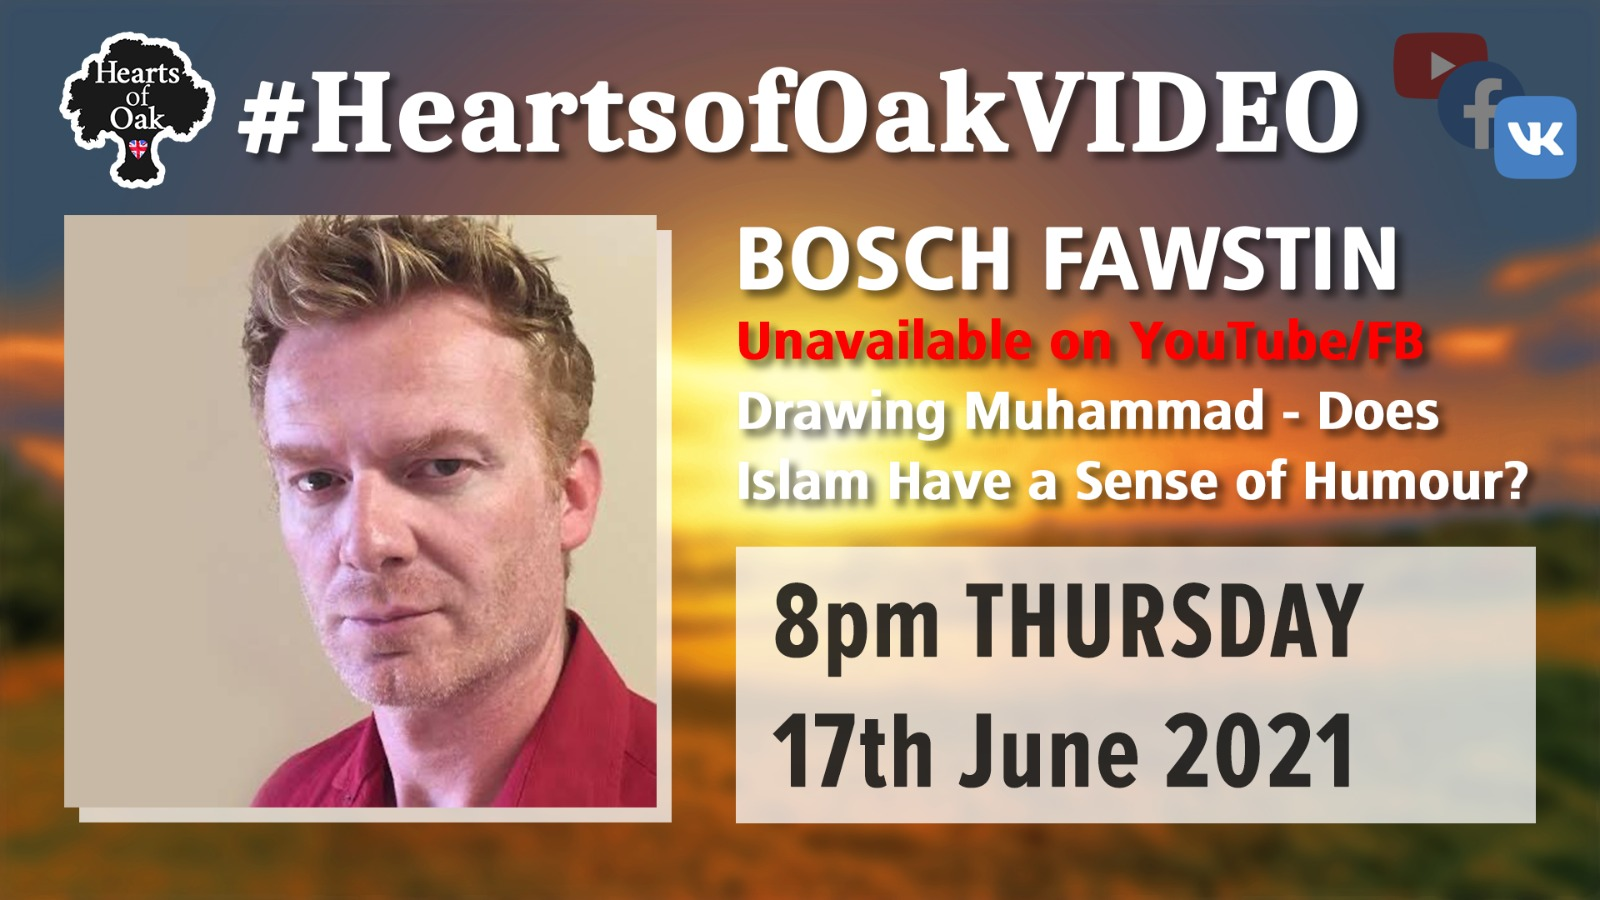 Bosch Fawstin: Drawing Muhammad - Does Islam have a sense of Humour?